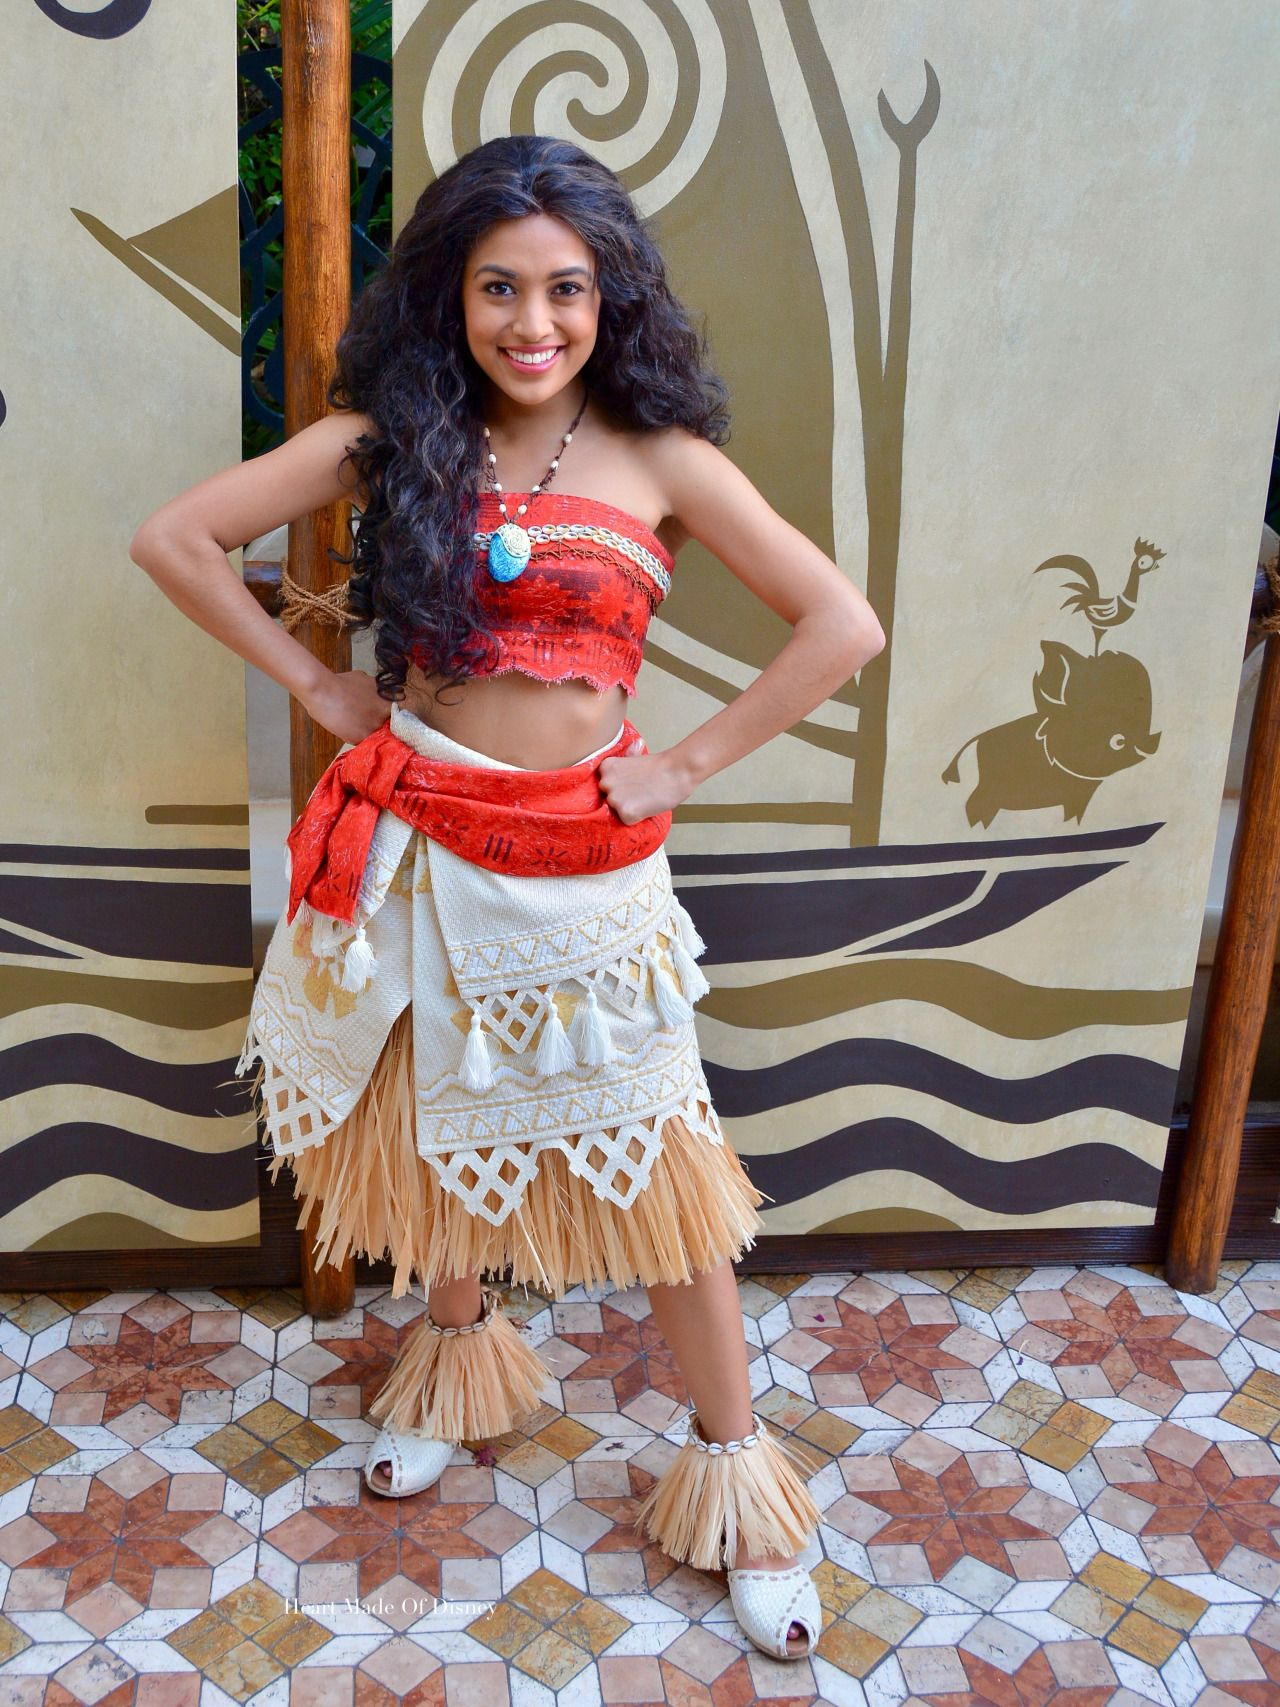 heart made of disney disney dreamer pinterest moana costumes and cosplay. Black Bedroom Furniture Sets. Home Design Ideas